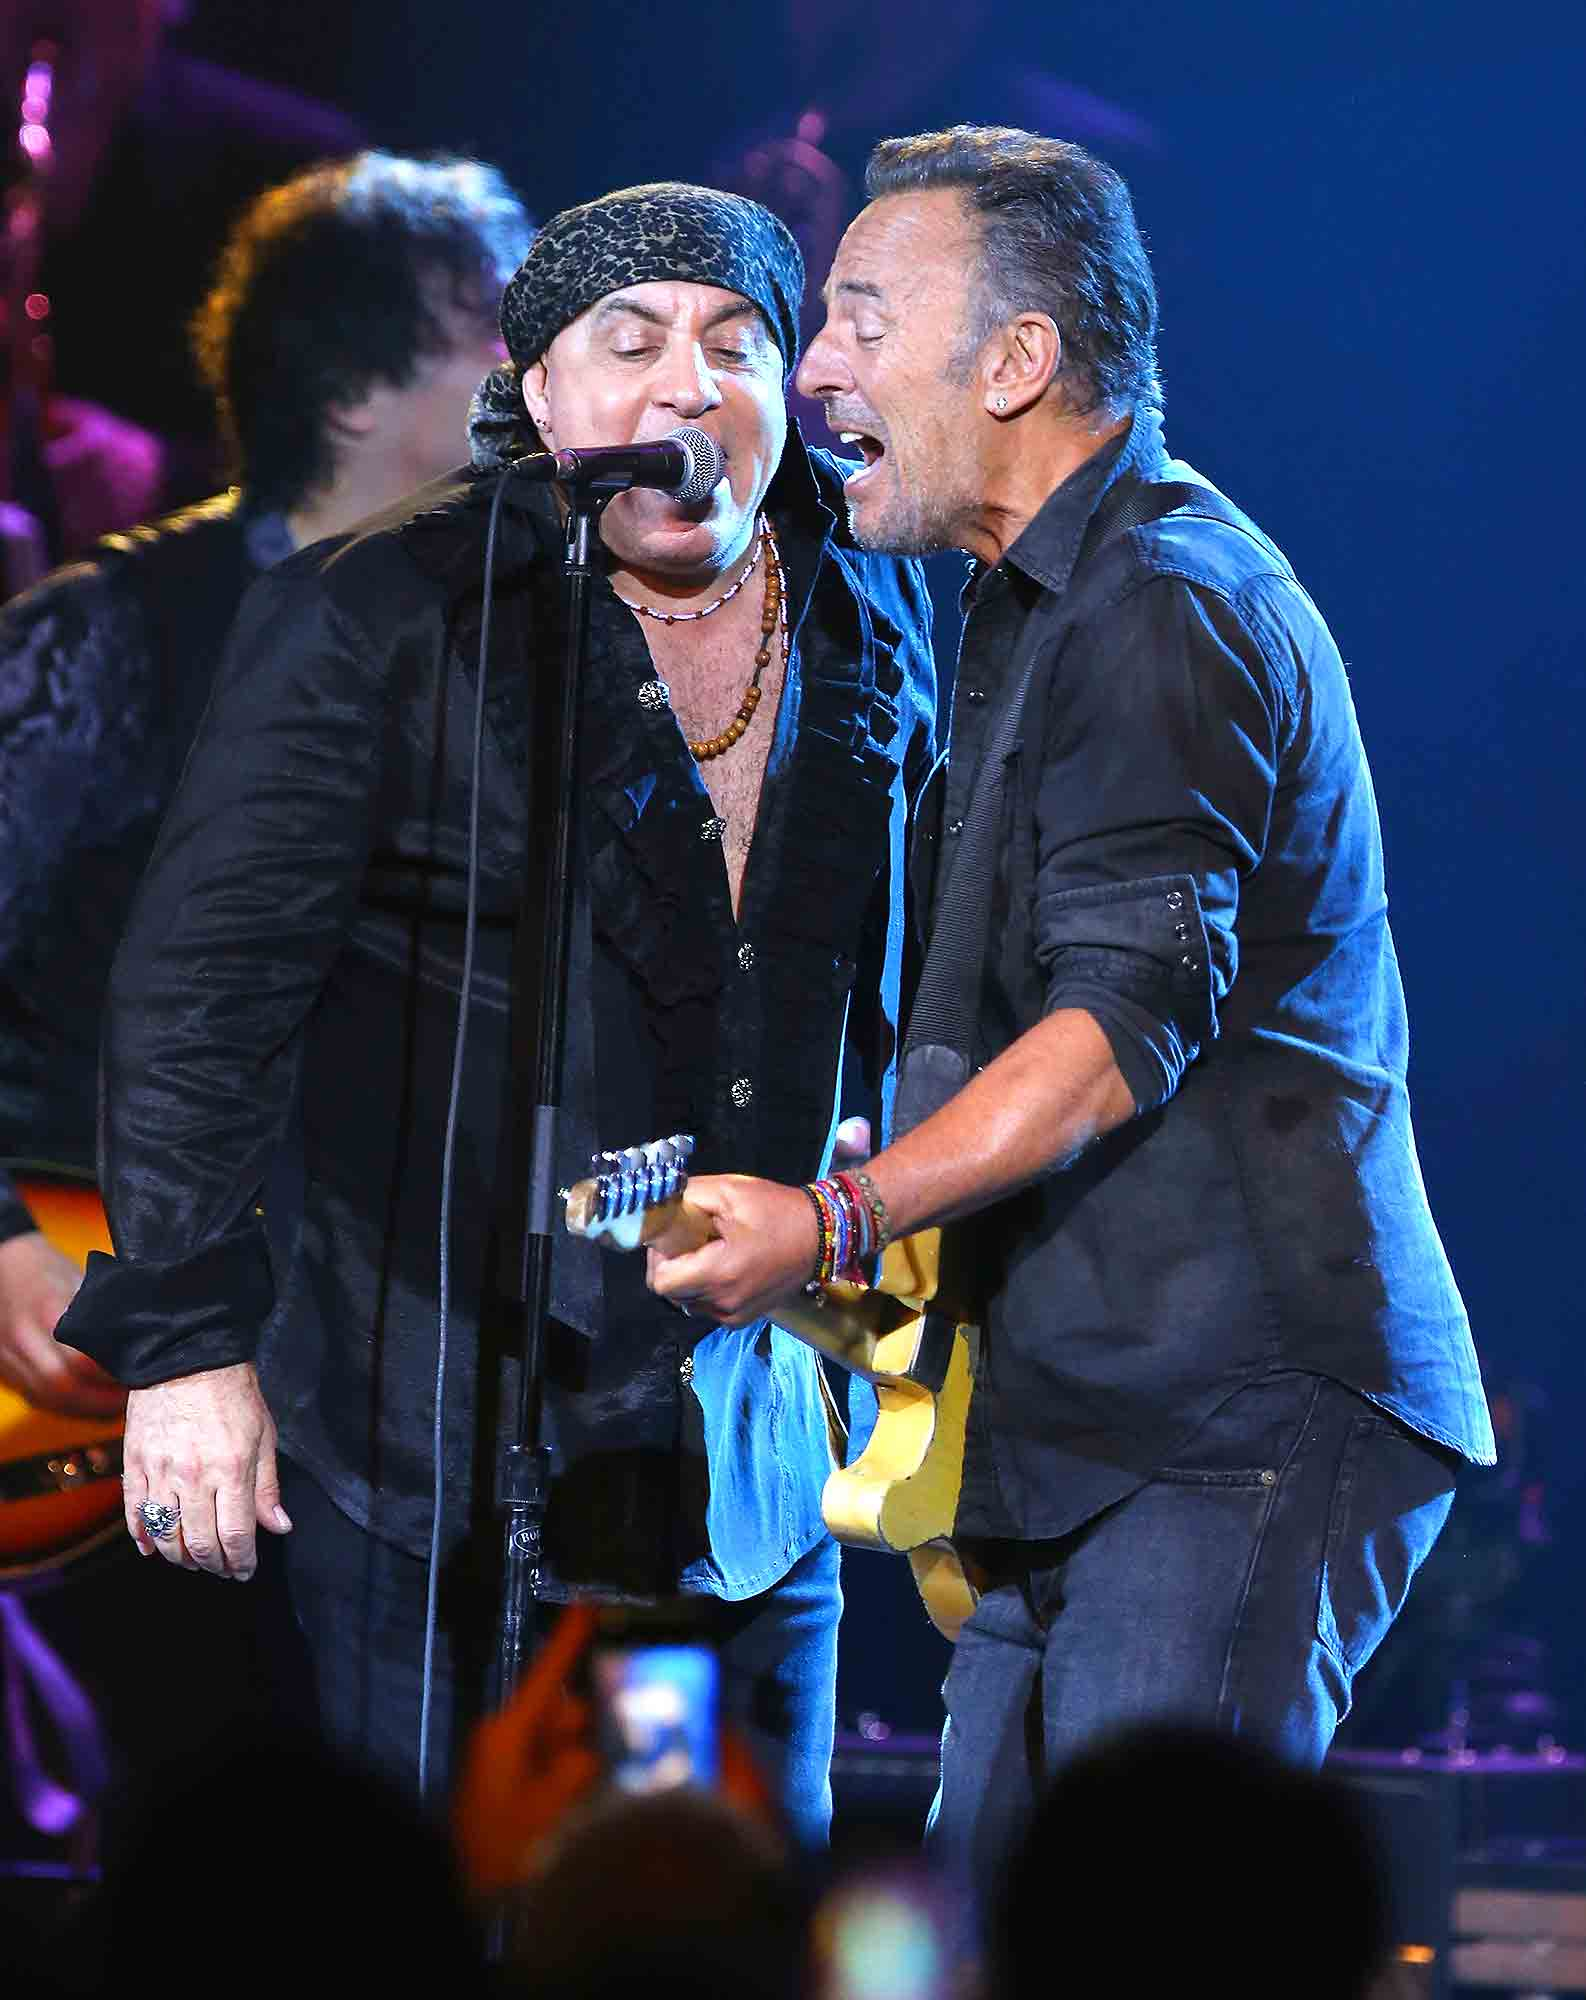 Bruce Springsteen and Steven Van Zandt when Little Steven and The Disciples of Soul